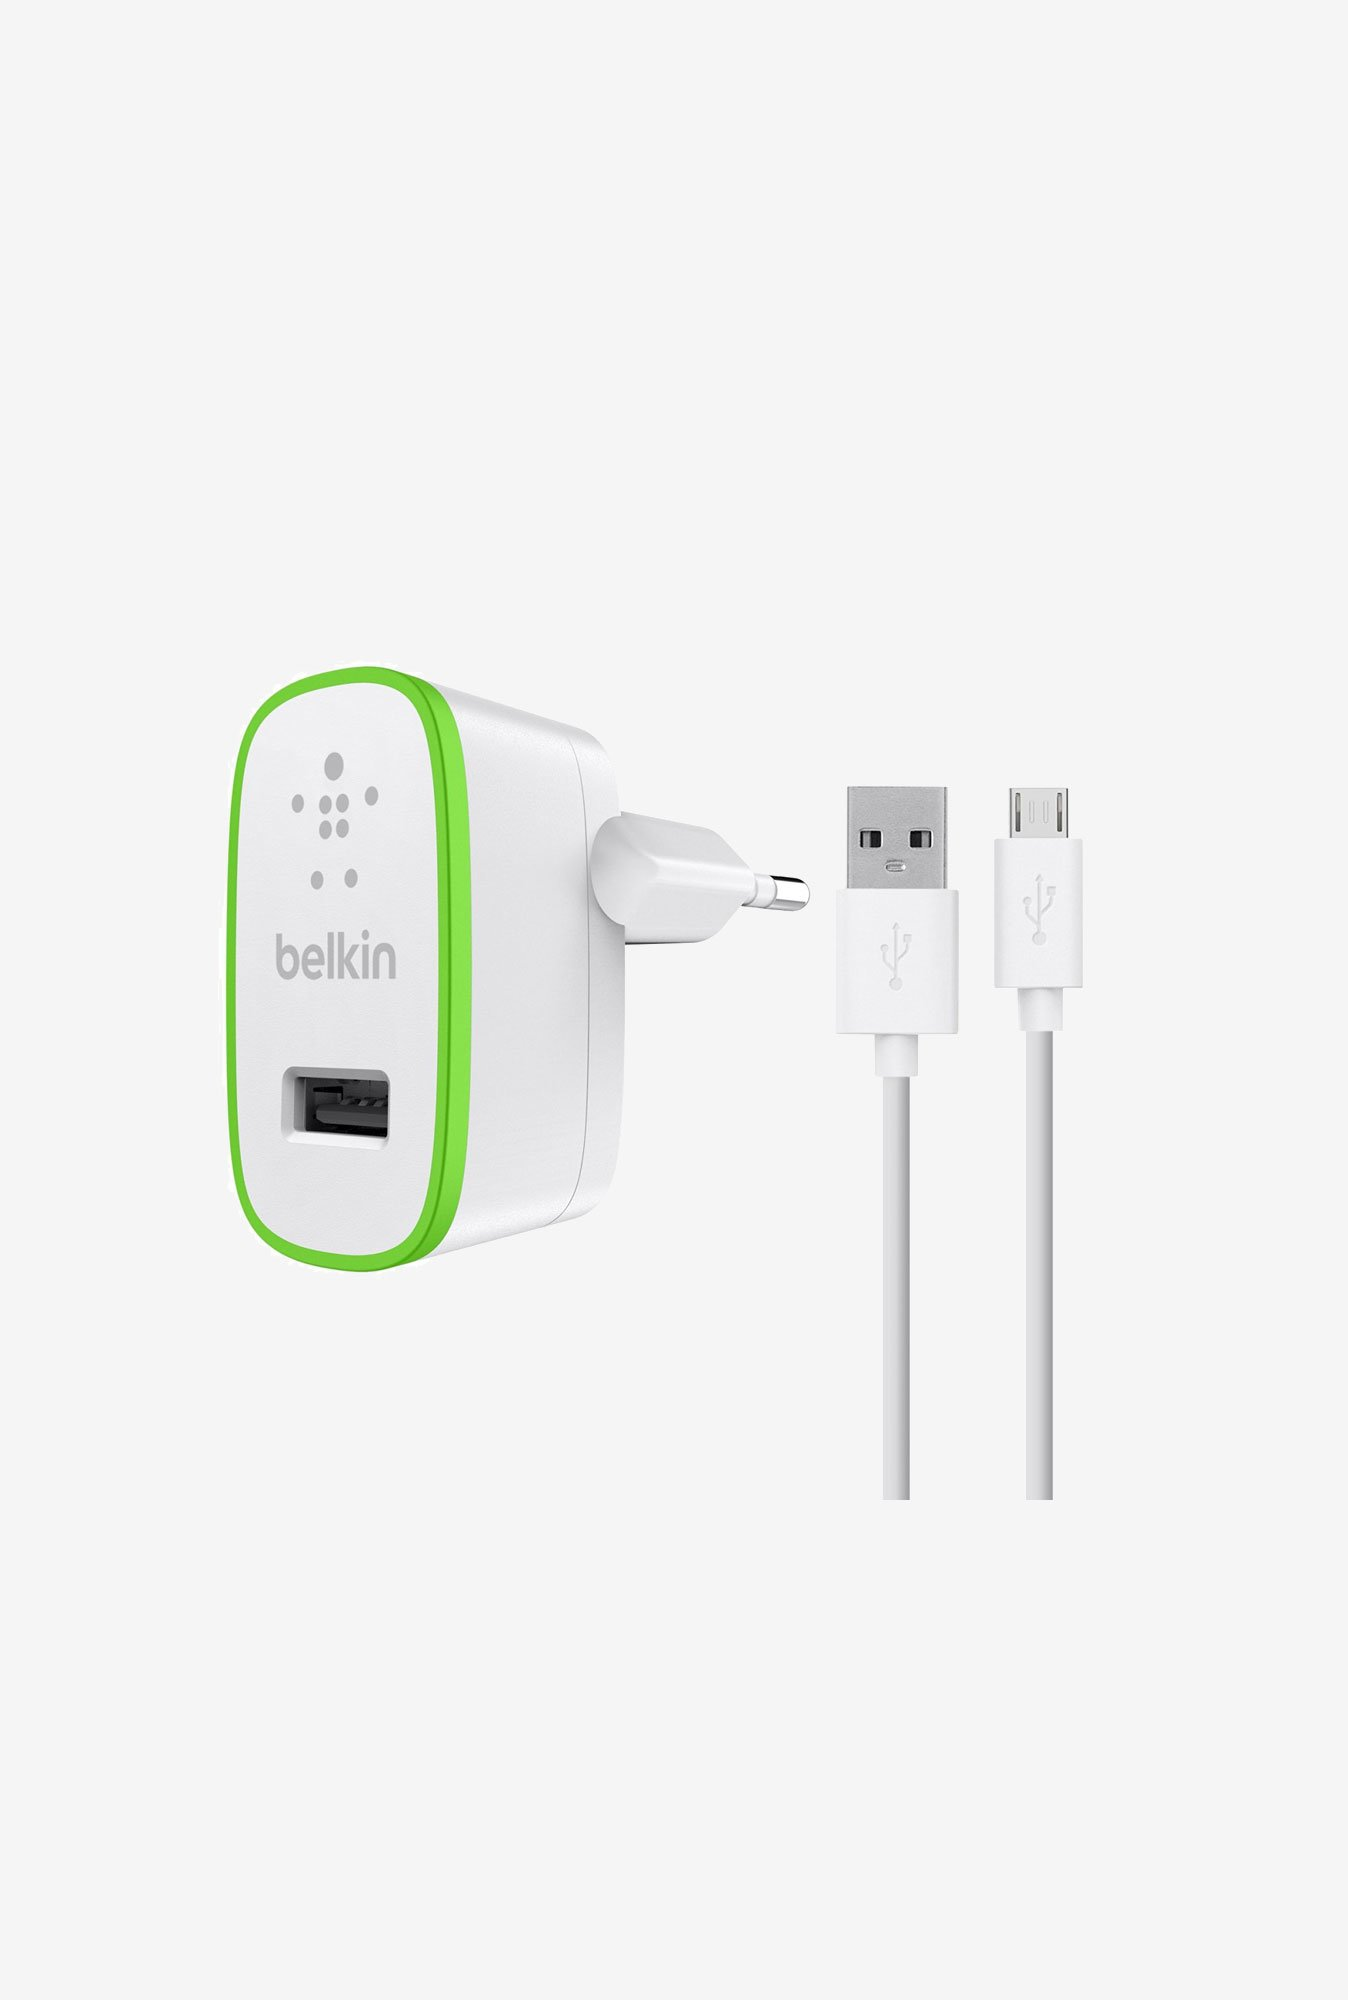 Belkin F8M667vf04-WHT Charger White